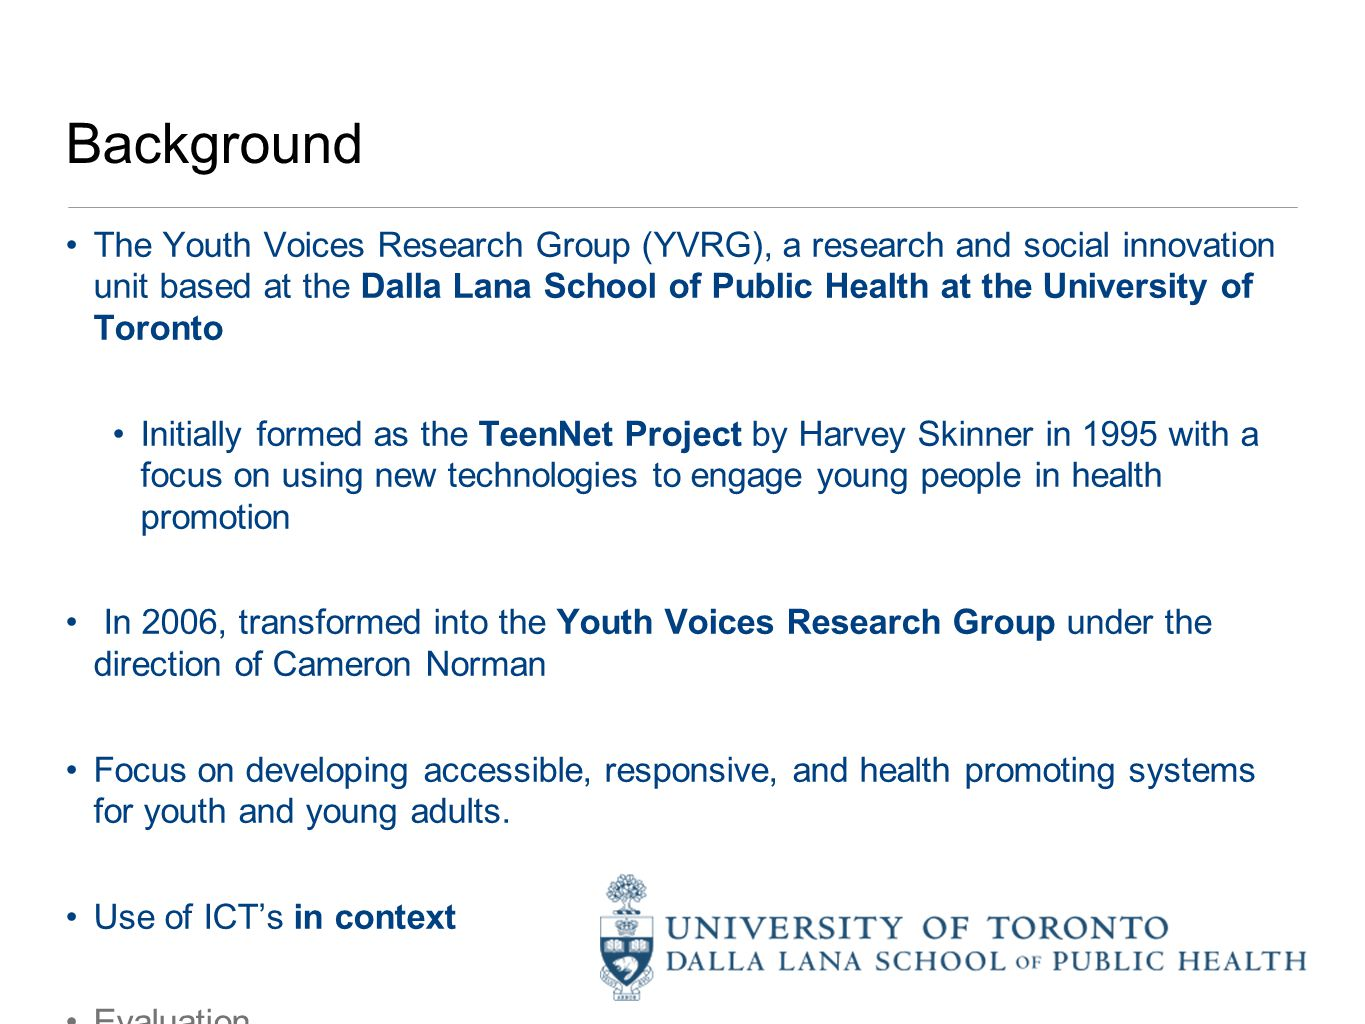 Background The Youth Voices Research Group (YVRG), a research and social innovation unit based at the Dalla Lana School of Public Health at the University of Toronto Initially formed as the TeenNet Project by Harvey Skinner in 1995 with a focus on using new technologies to engage young people in health promotion In 2006, transformed into the Youth Voices Research Group under the direction of Cameron Norman Focus on developing accessible, responsive, and health promoting systems for youth and young adults.